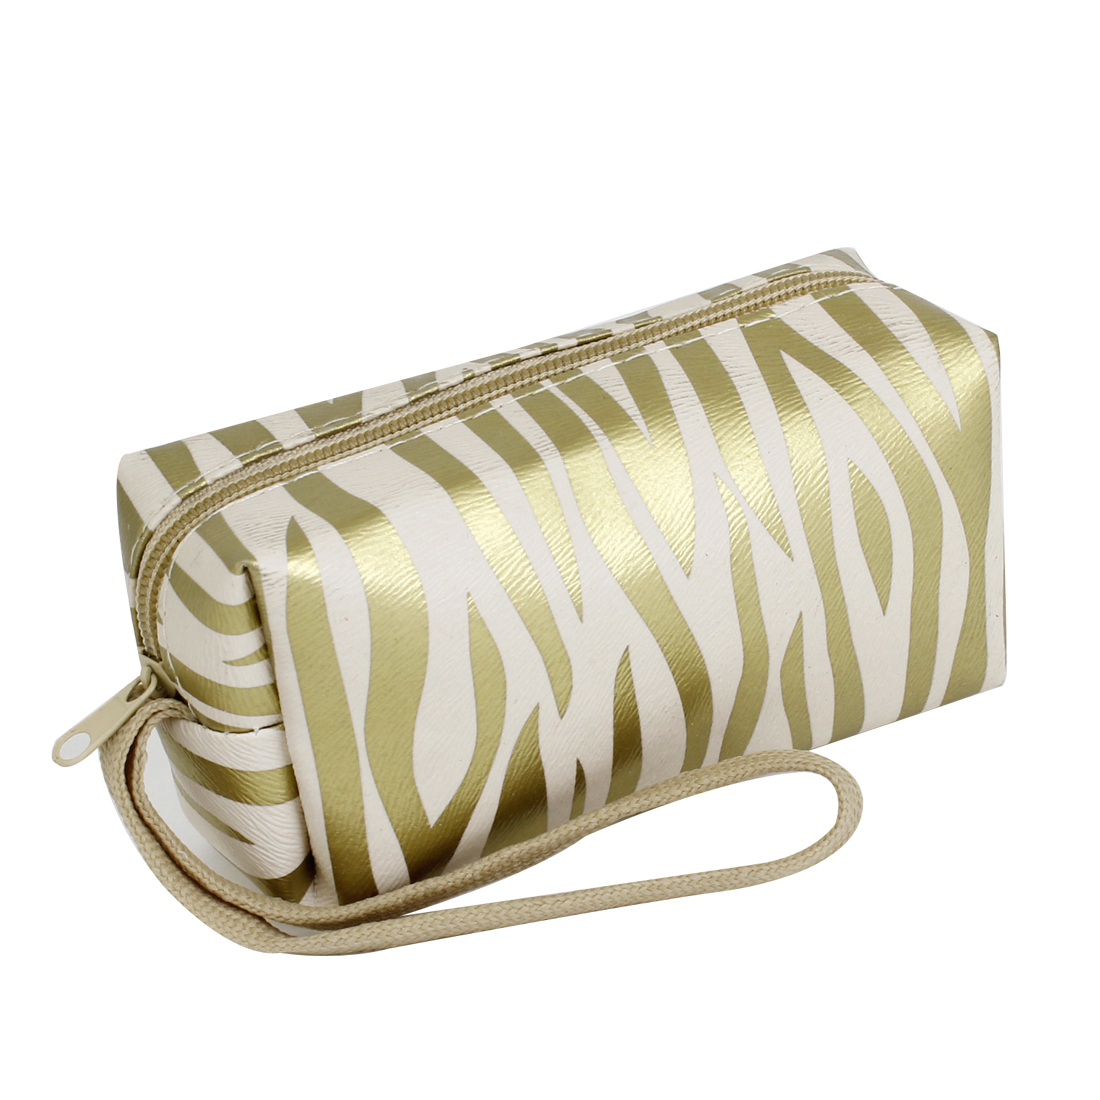 Gold Tone Zebra Pattern Faux Leather Mini Purse Money Card Holder for Women